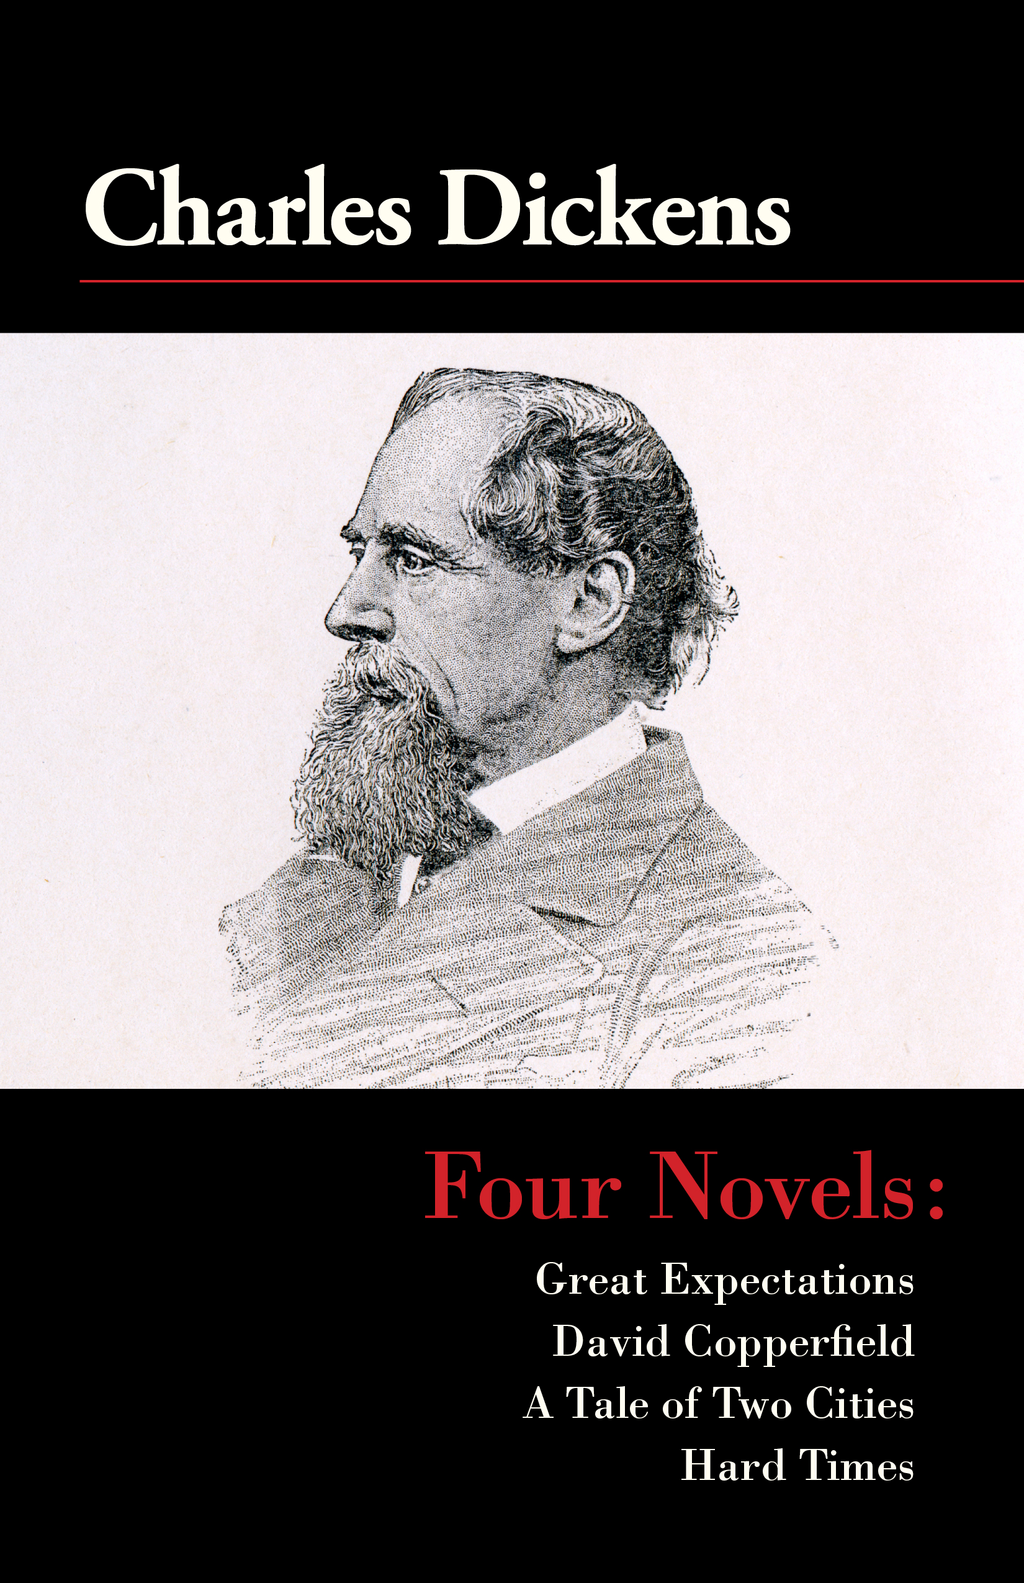 Four Novels By: Charles Dickens